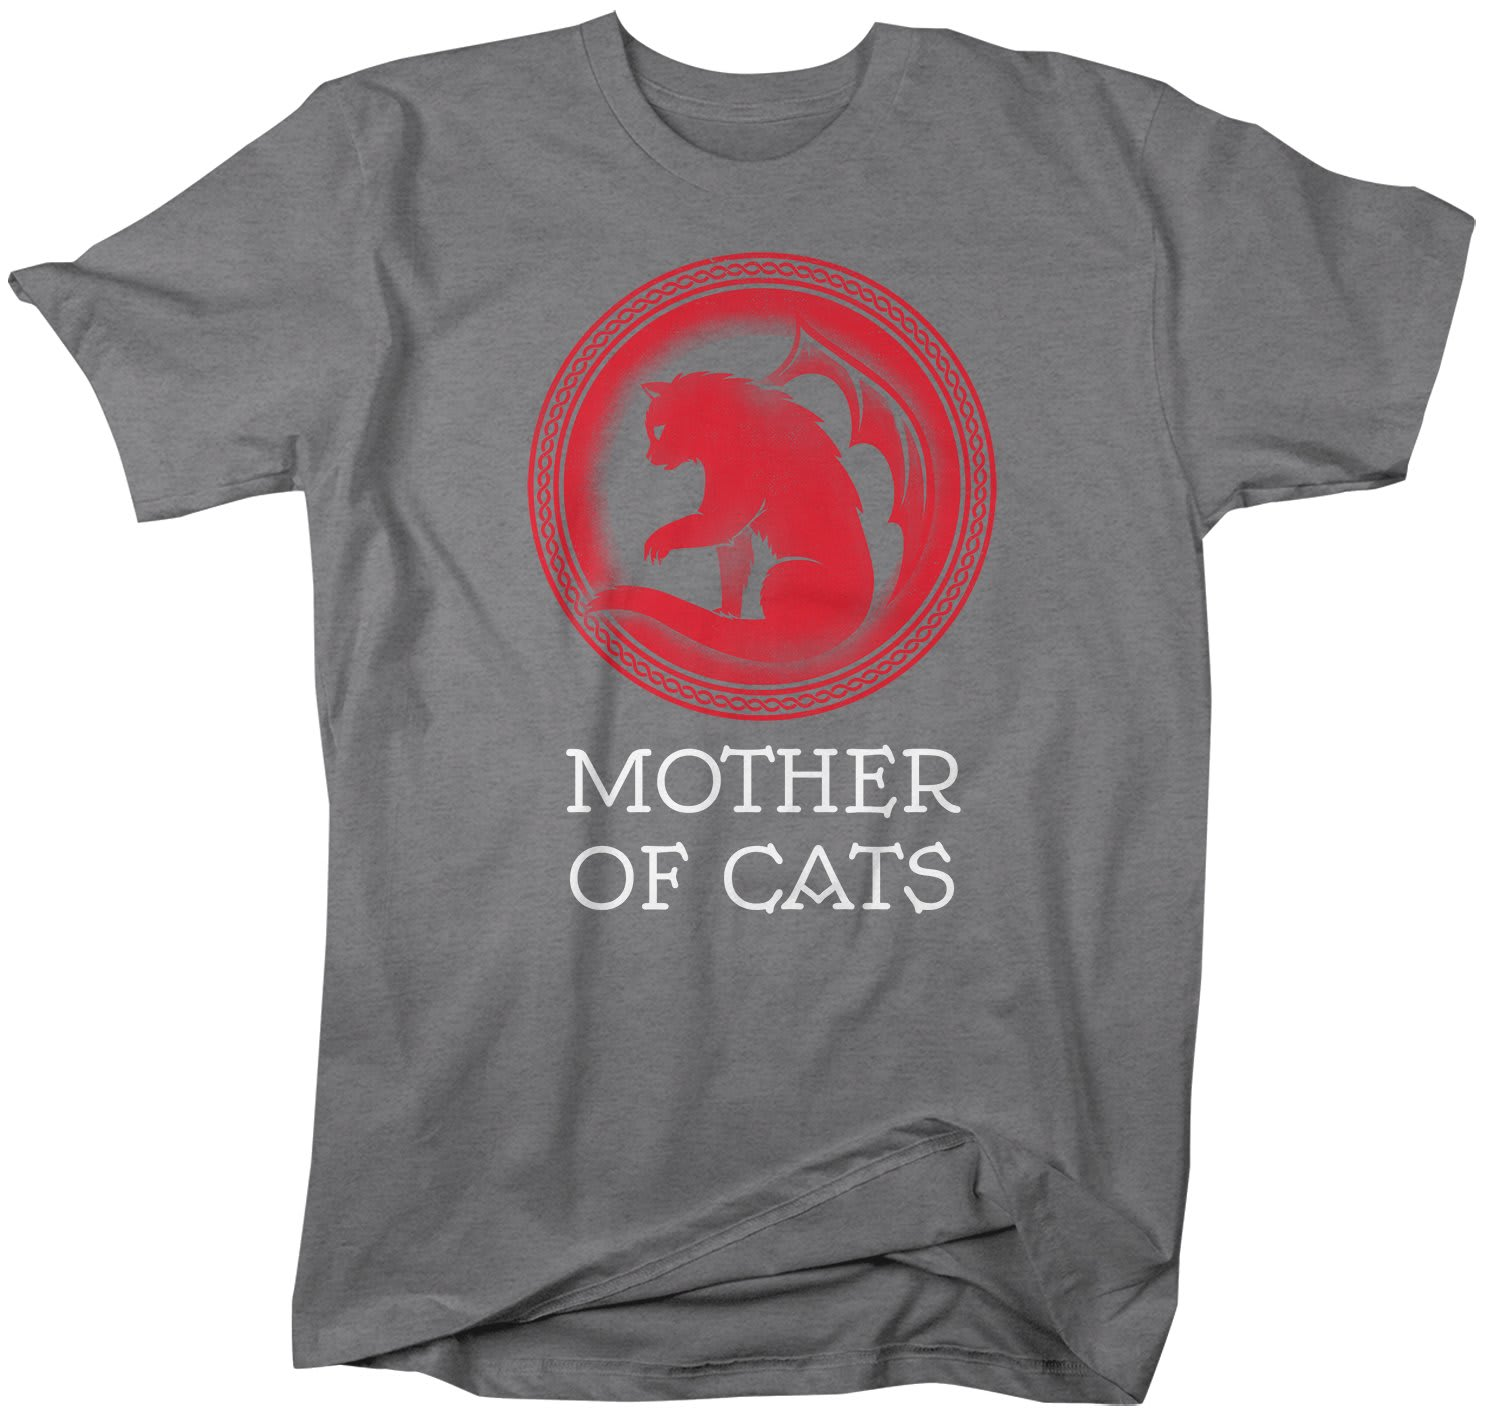 Gift for Cat Mom Cats Tshirt Shirts about Cats Cat Shirts for Women Gift for Cat Owner Cats Shirt Cat Mom Shirt Peace Love Cats Shirt